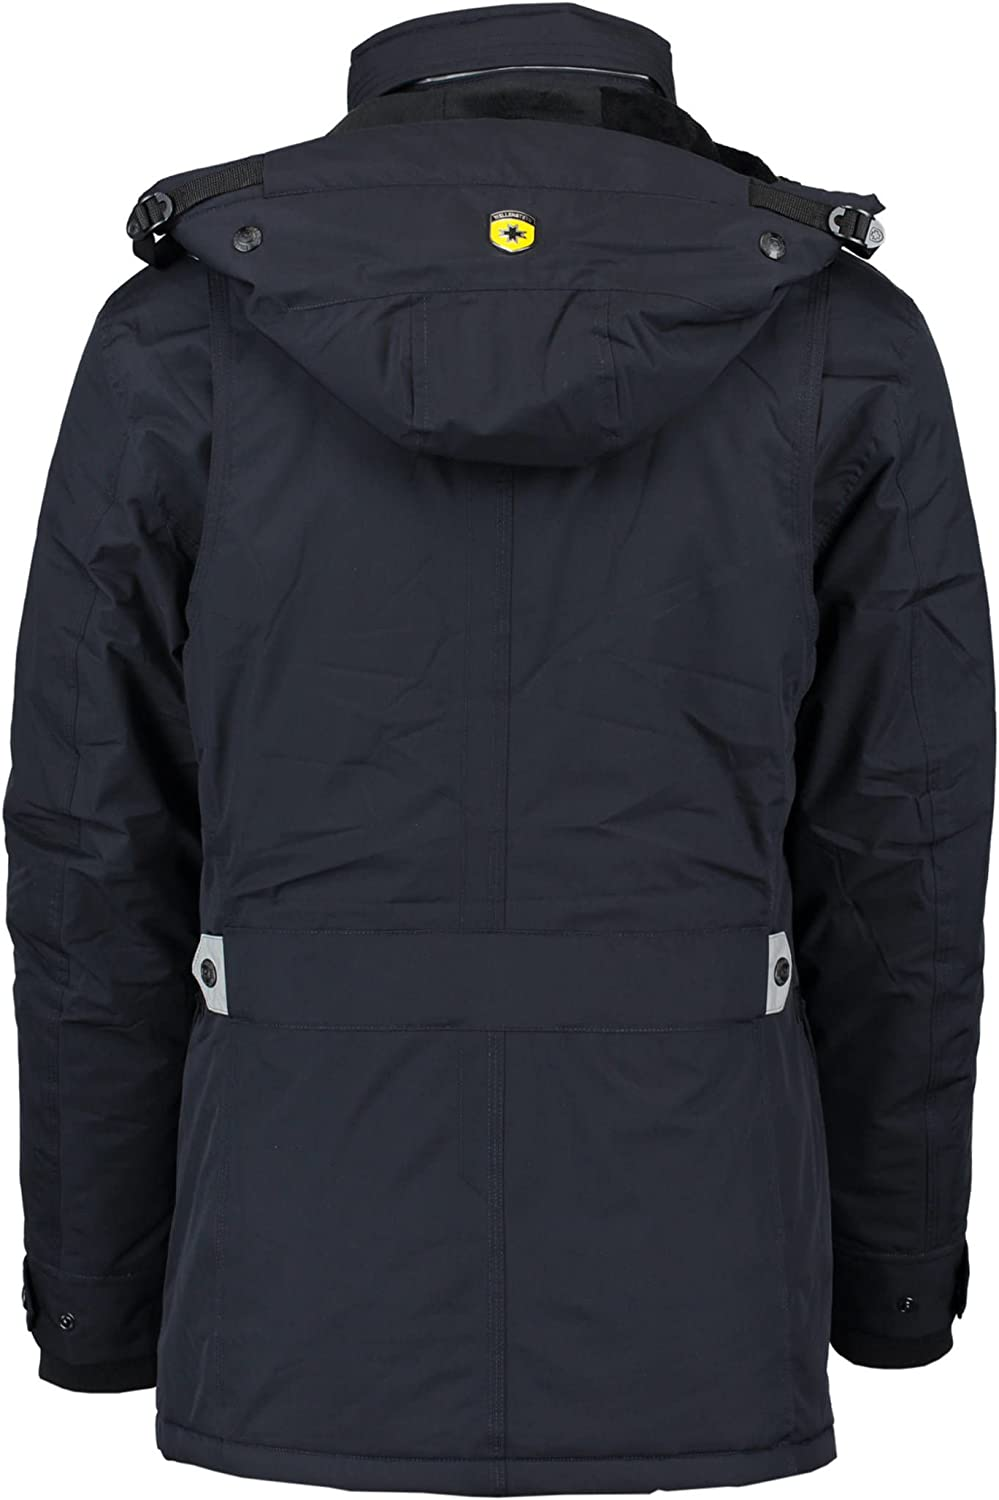 Wellensteyn Feuerland RainbowAirTec Midnightblue Jacke Herren Winter